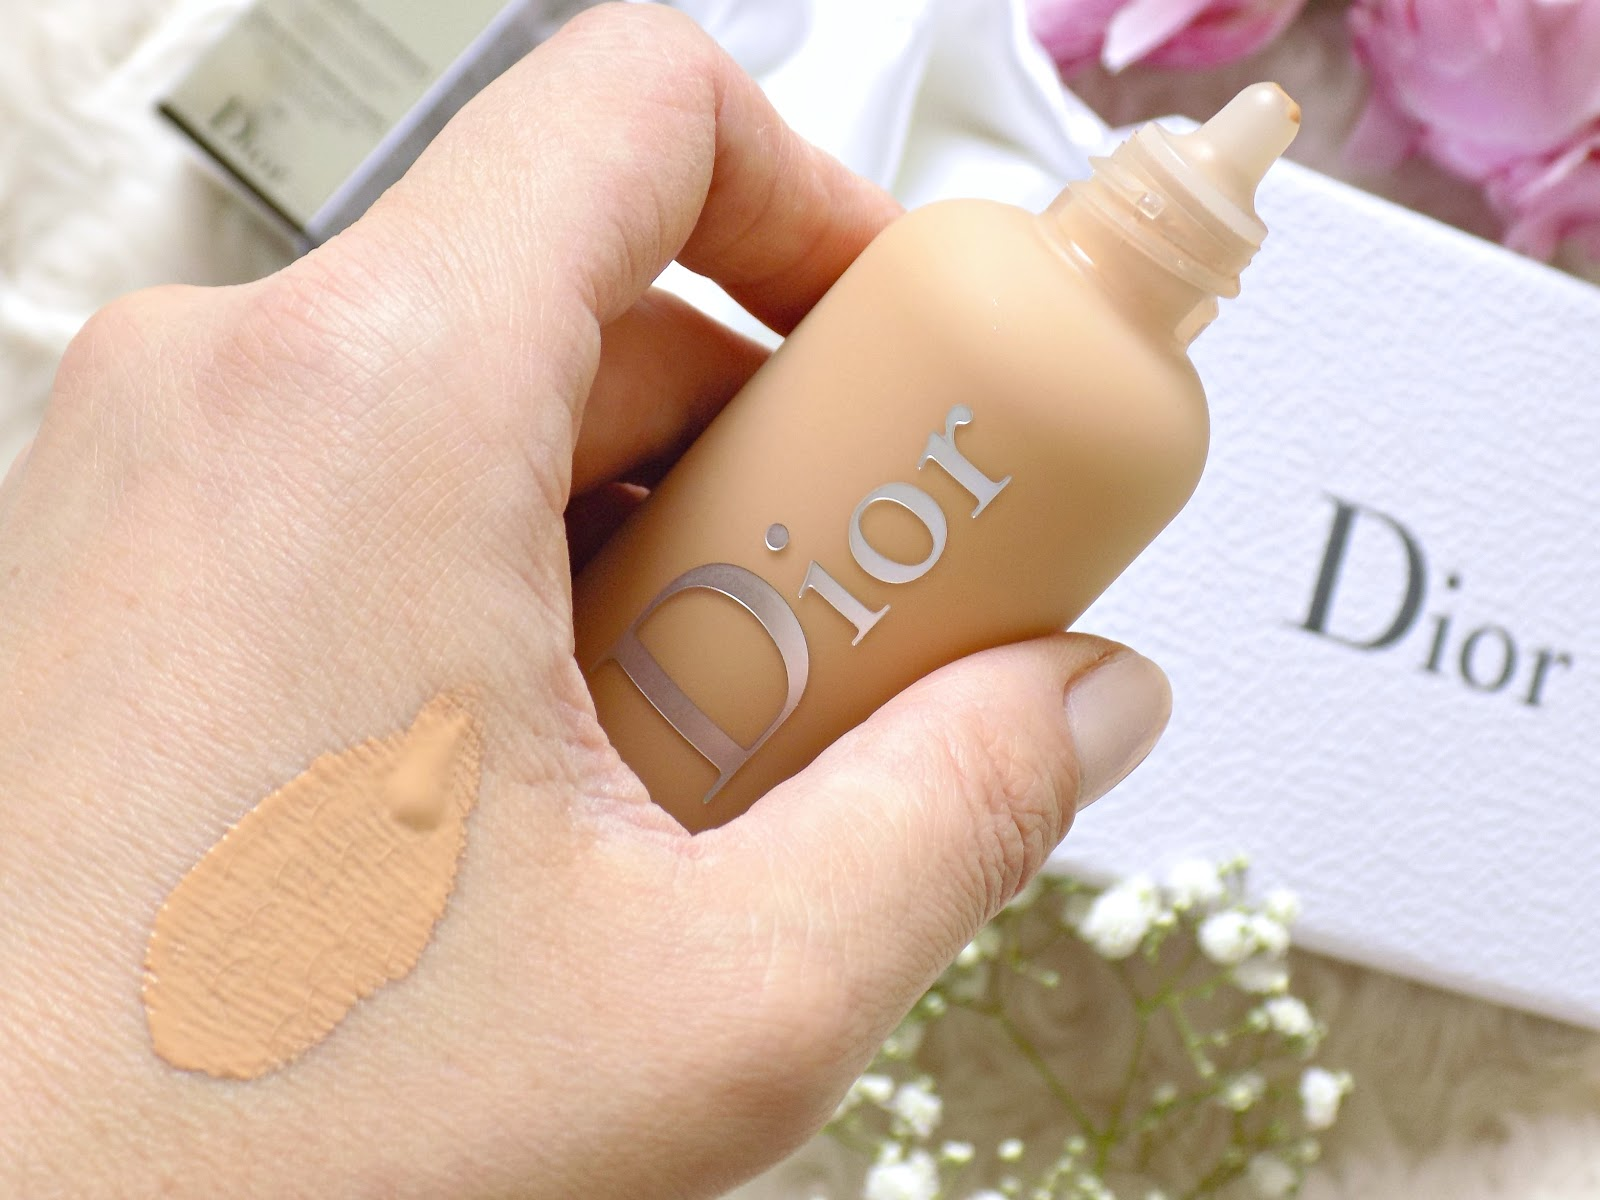 Dior Backstage Face and Body Foundation shade 2W